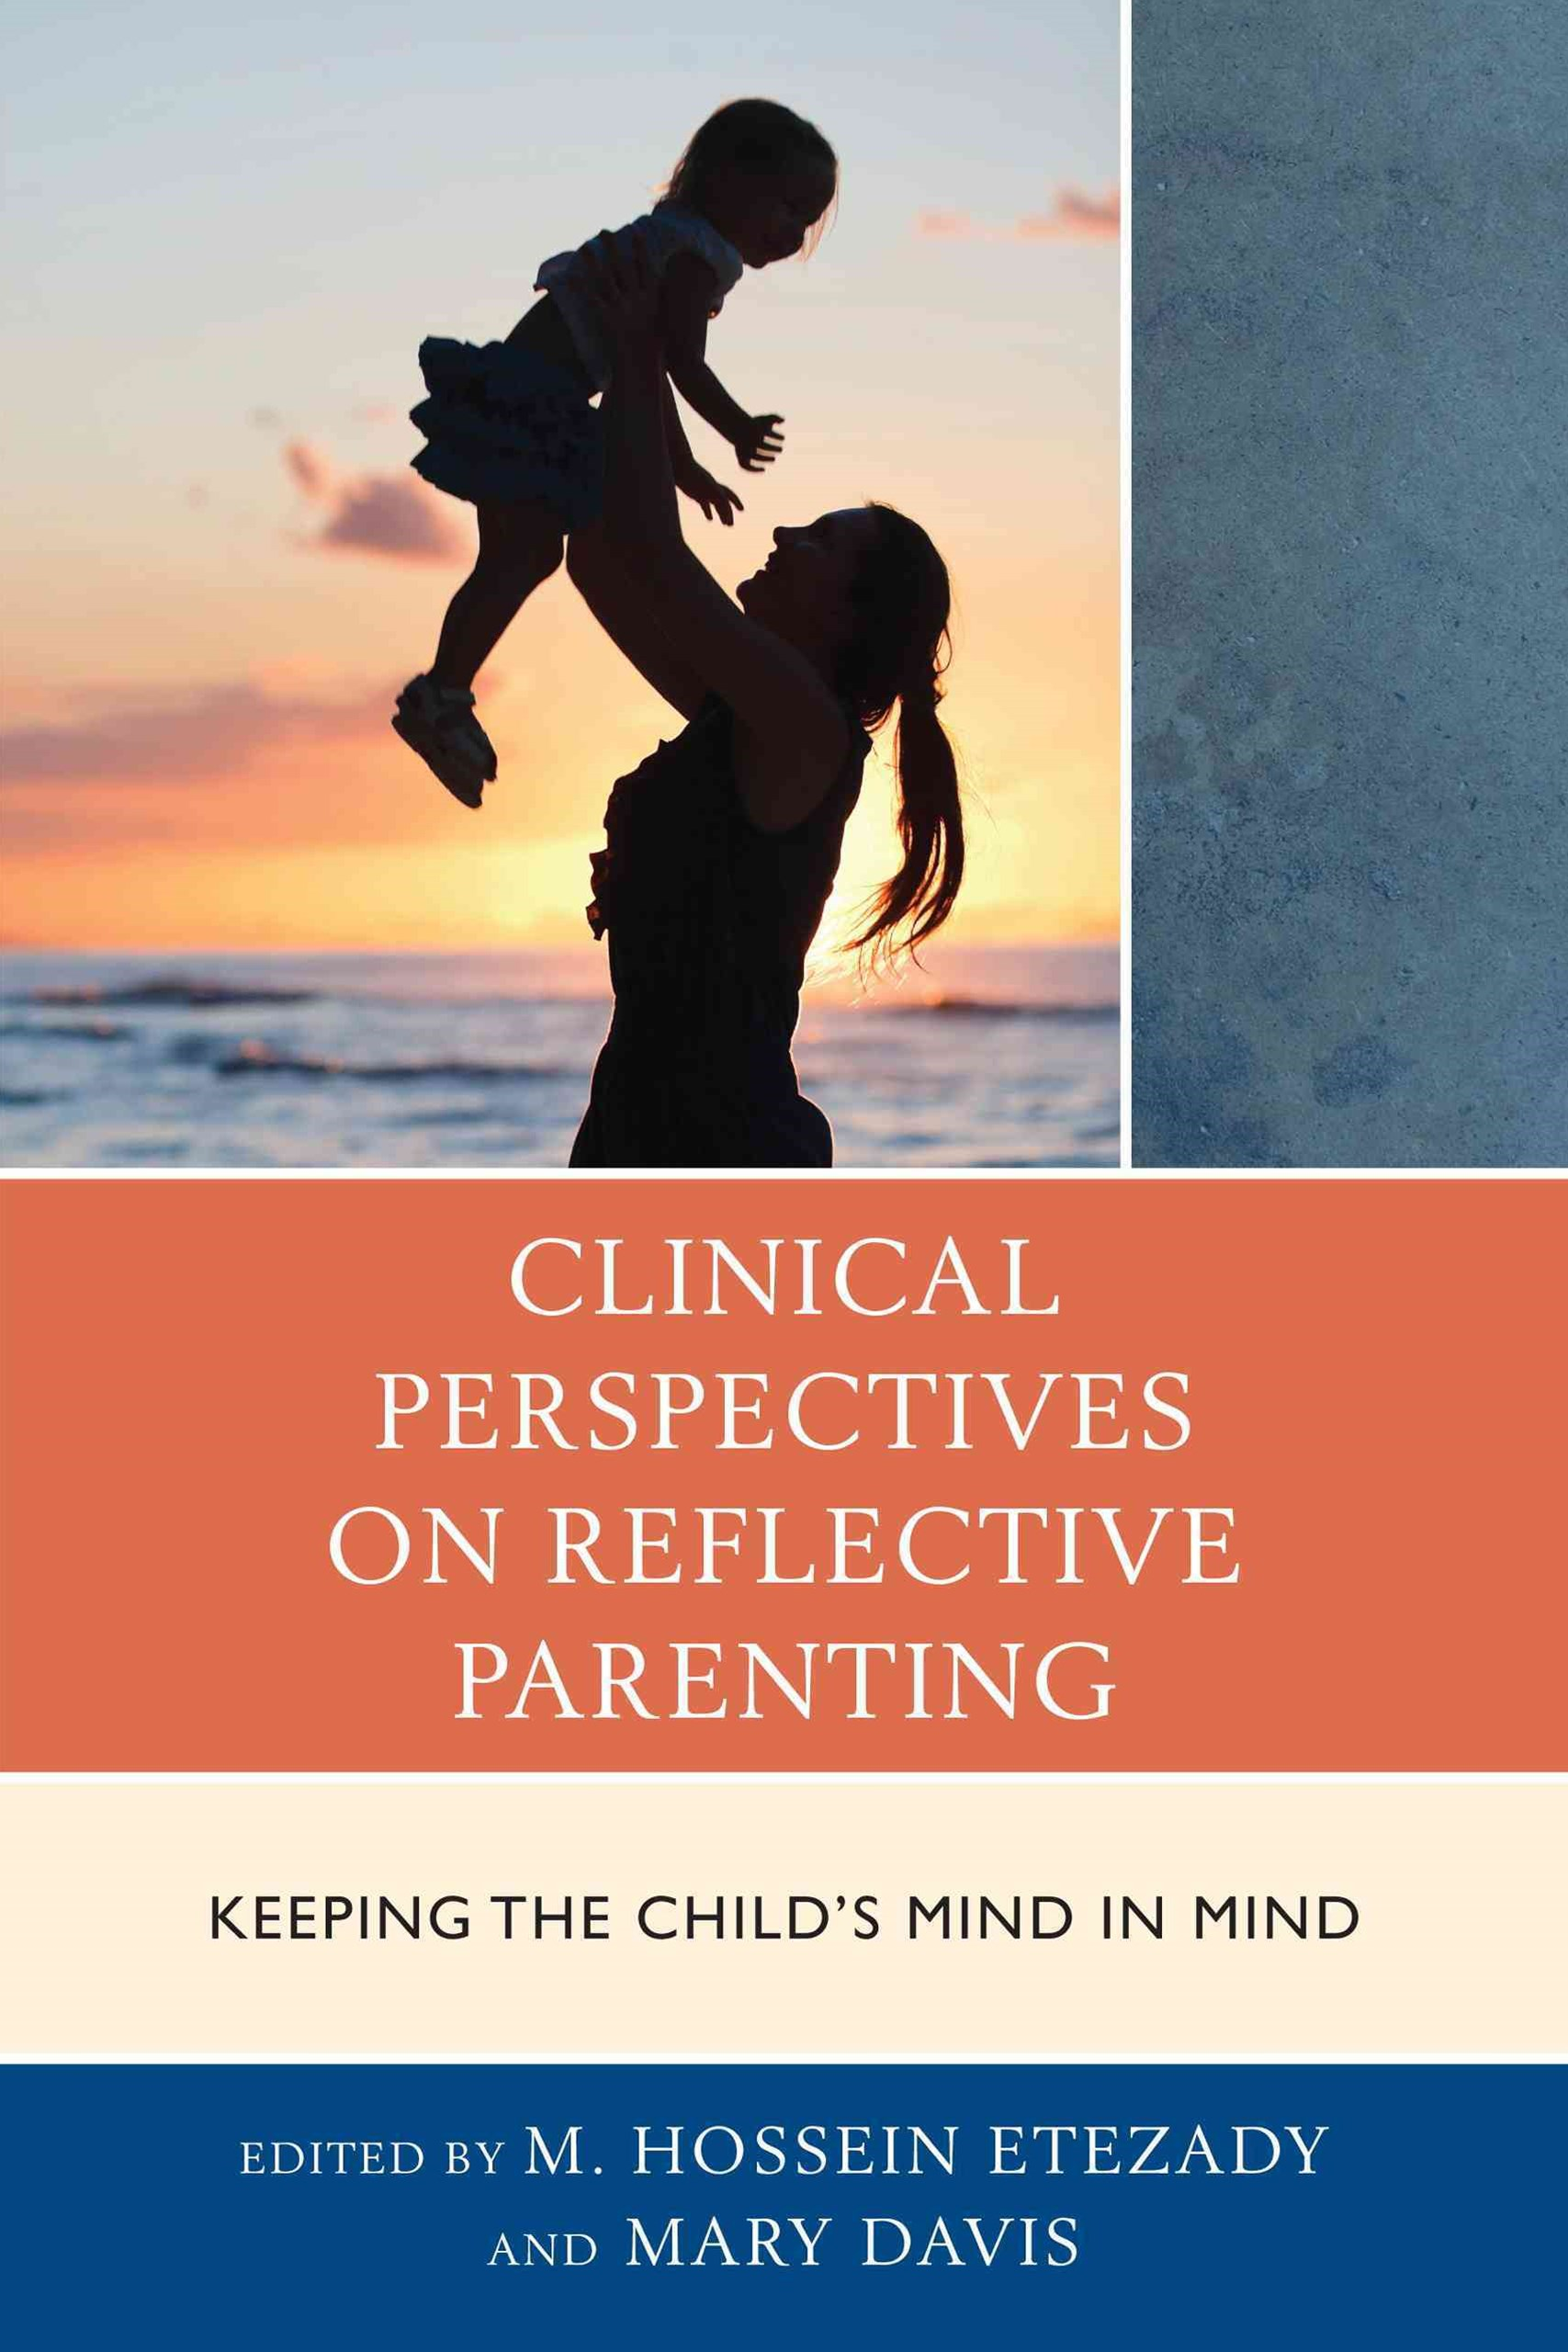 Clinical Perspectives on Reflective Parenting